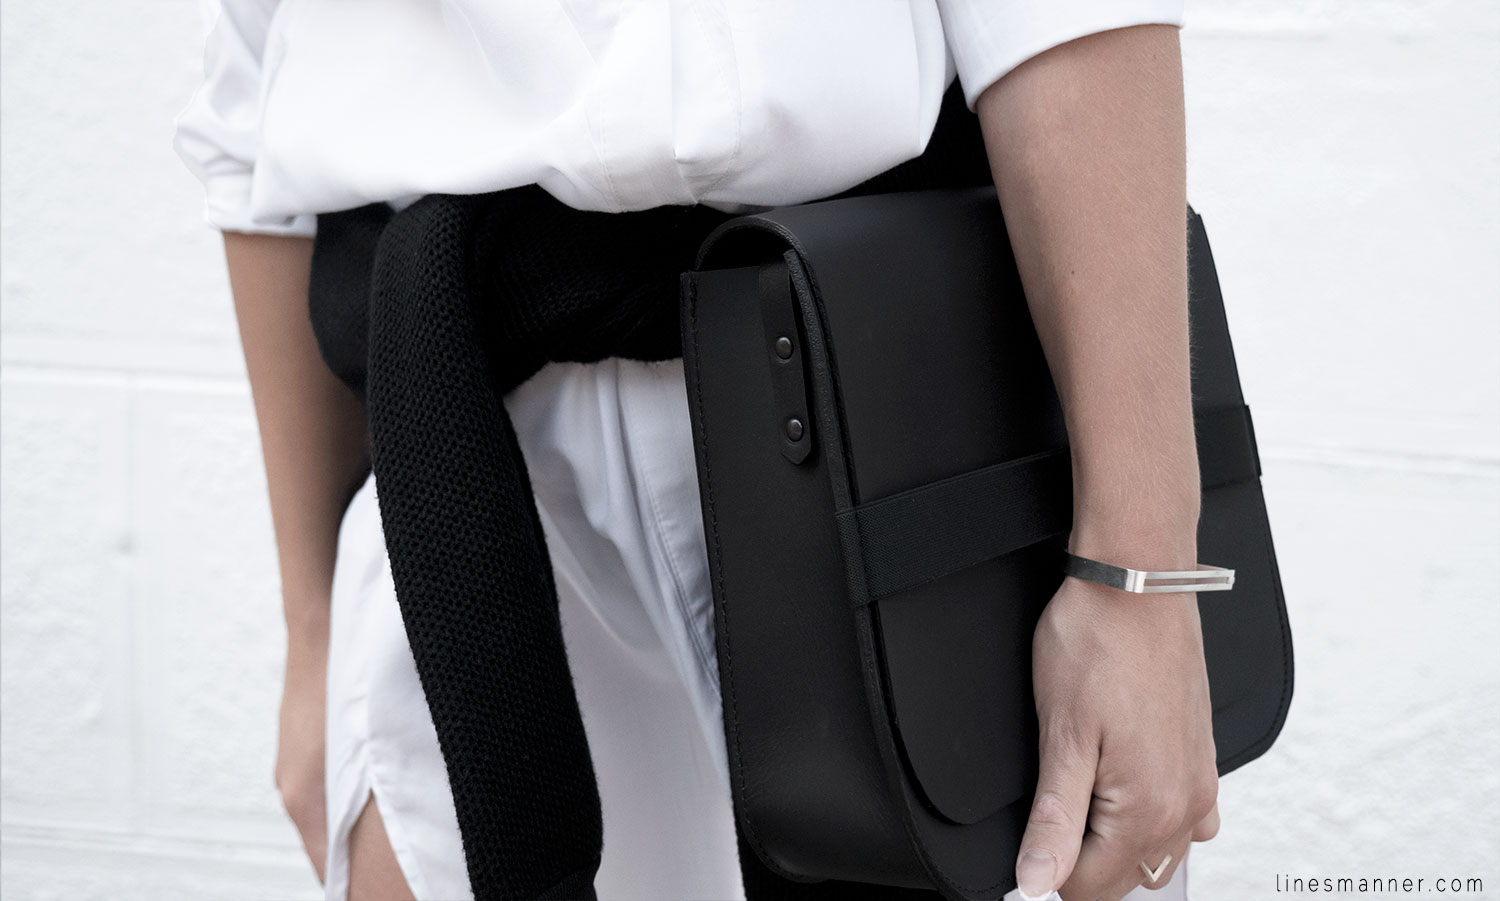 Lines-Manner-Whiteout-Fashion-Minimal-Clean-Fresh-Brigthly-All_White-Monochrome-Immaculate-Trend-Style-Sleek-Slouchy-Details-White_Shirt-Transeasonal-Dressing-Outfit-13